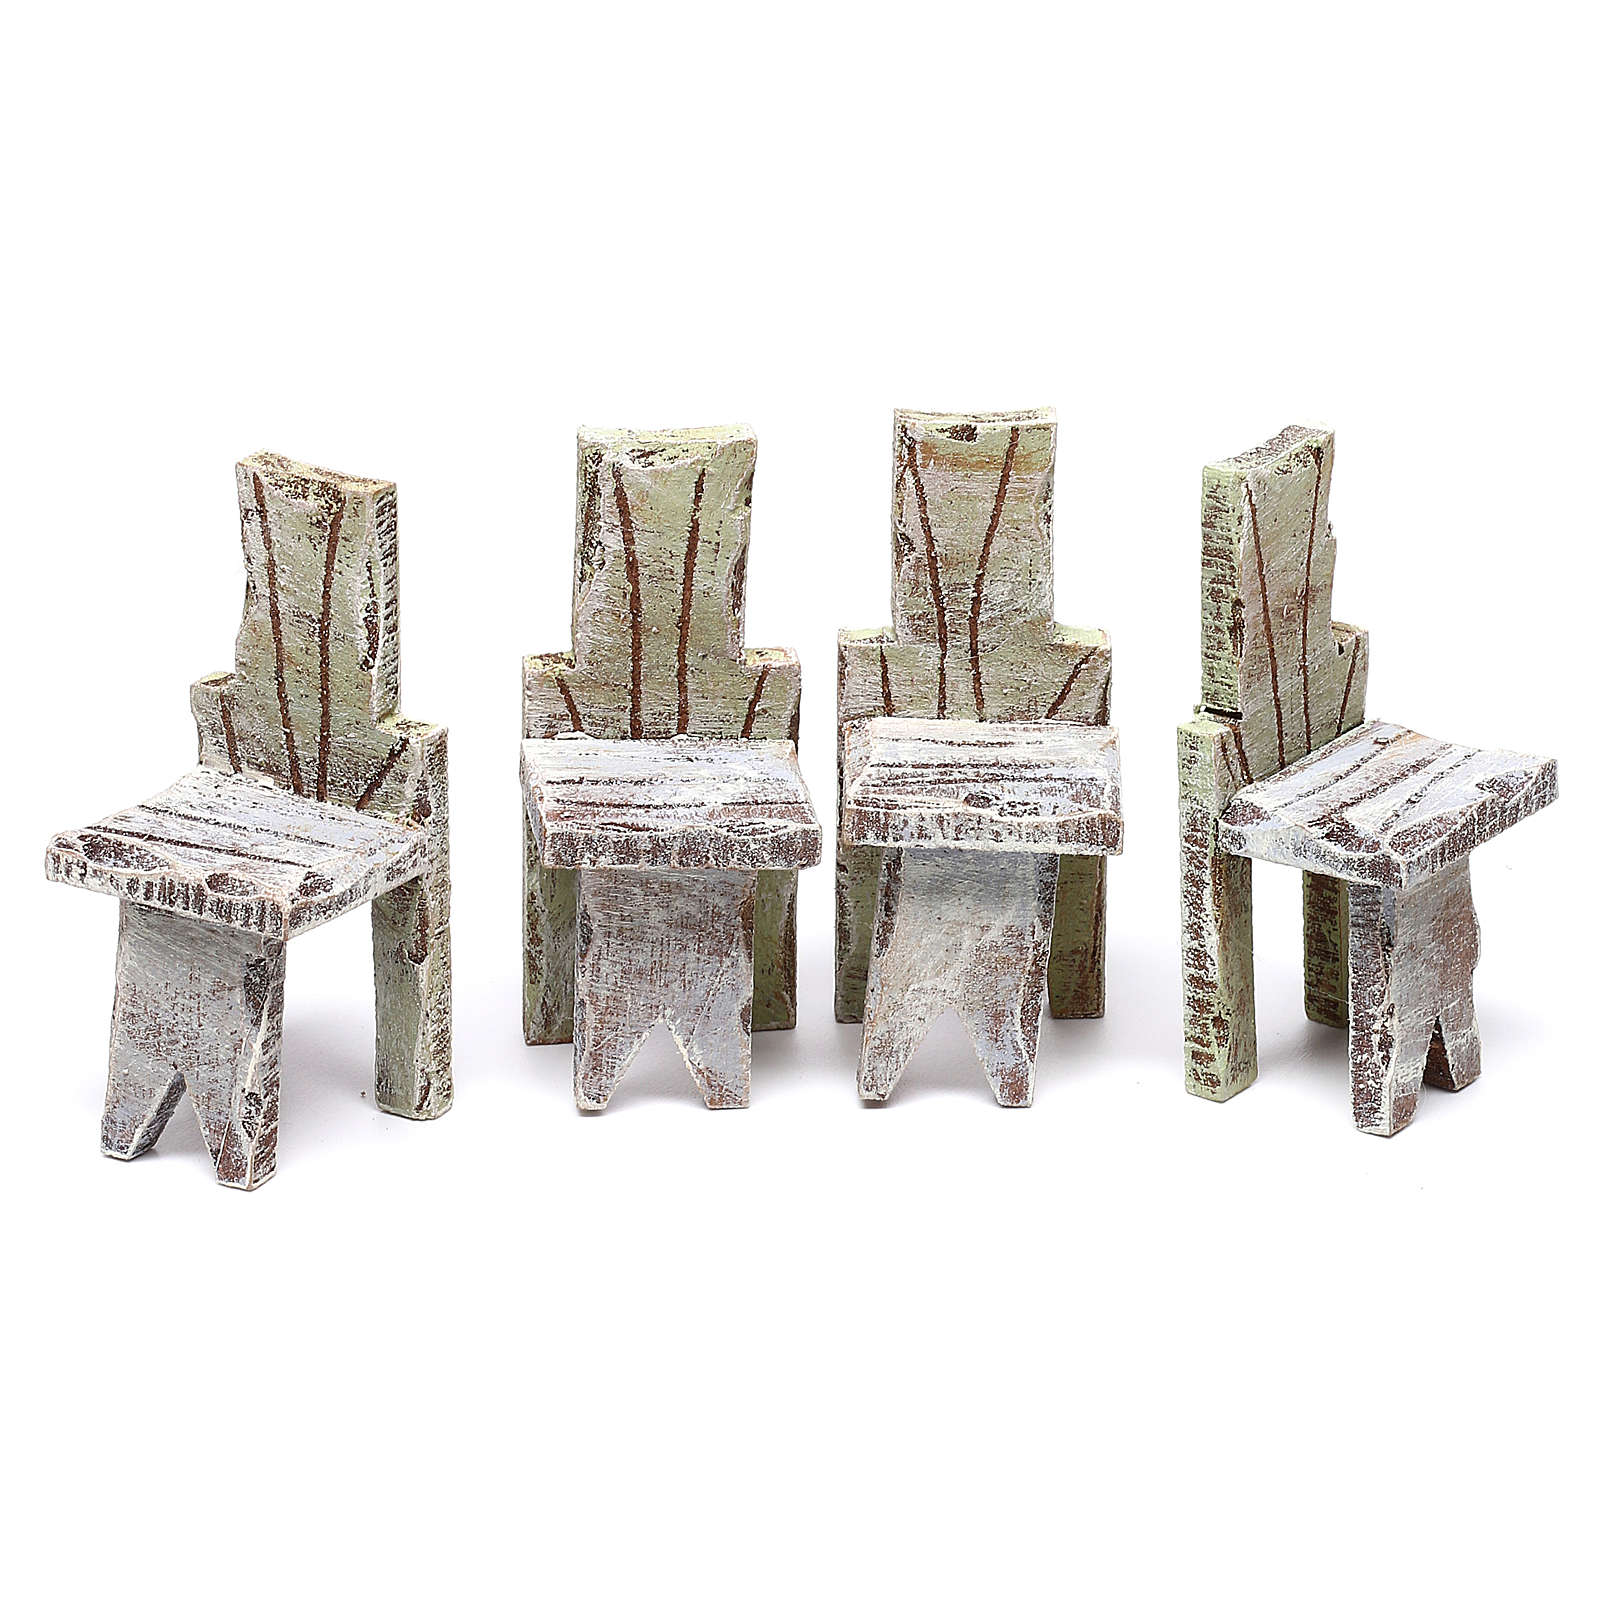 Miniature table with 4 chairs, for 12 cm 10x5x5 cm 4